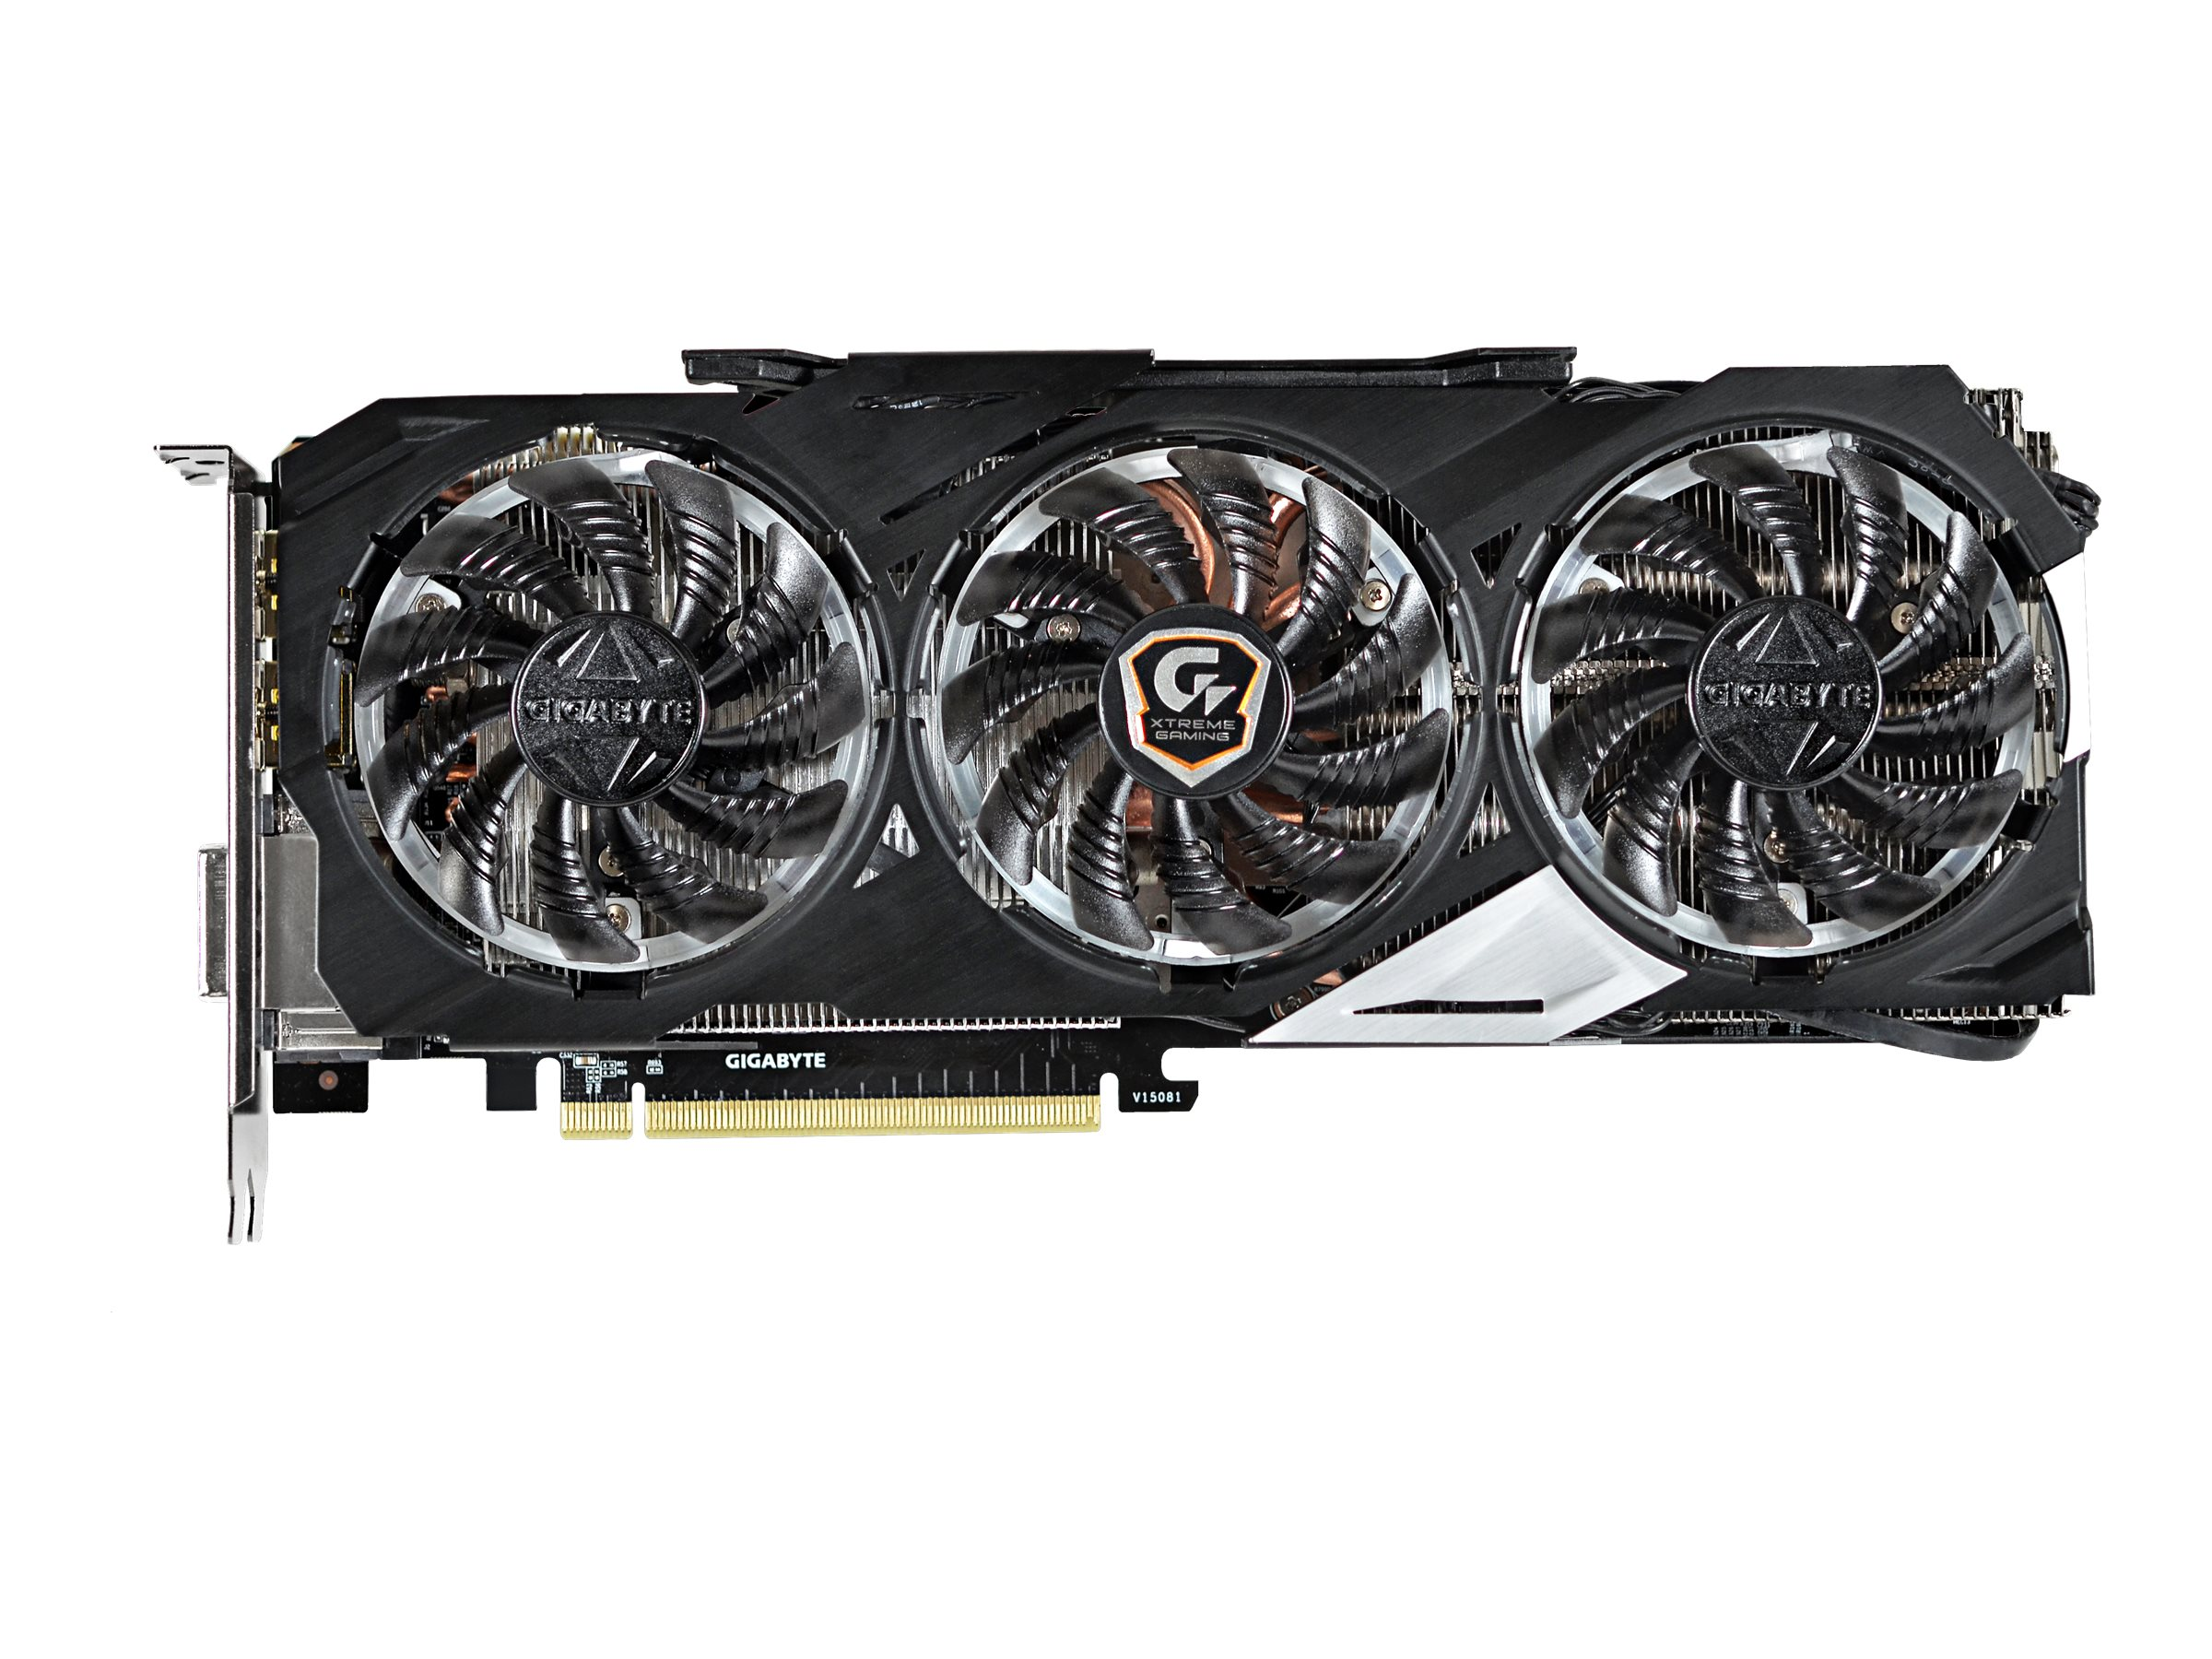 Gigabyte Tech GeForce GTX980 PCIe 3.0 Overclocked Graphics Card, 4GB GDDR5, GV-N980XTREME-4GD, 30954147, Graphics/Video Accelerators